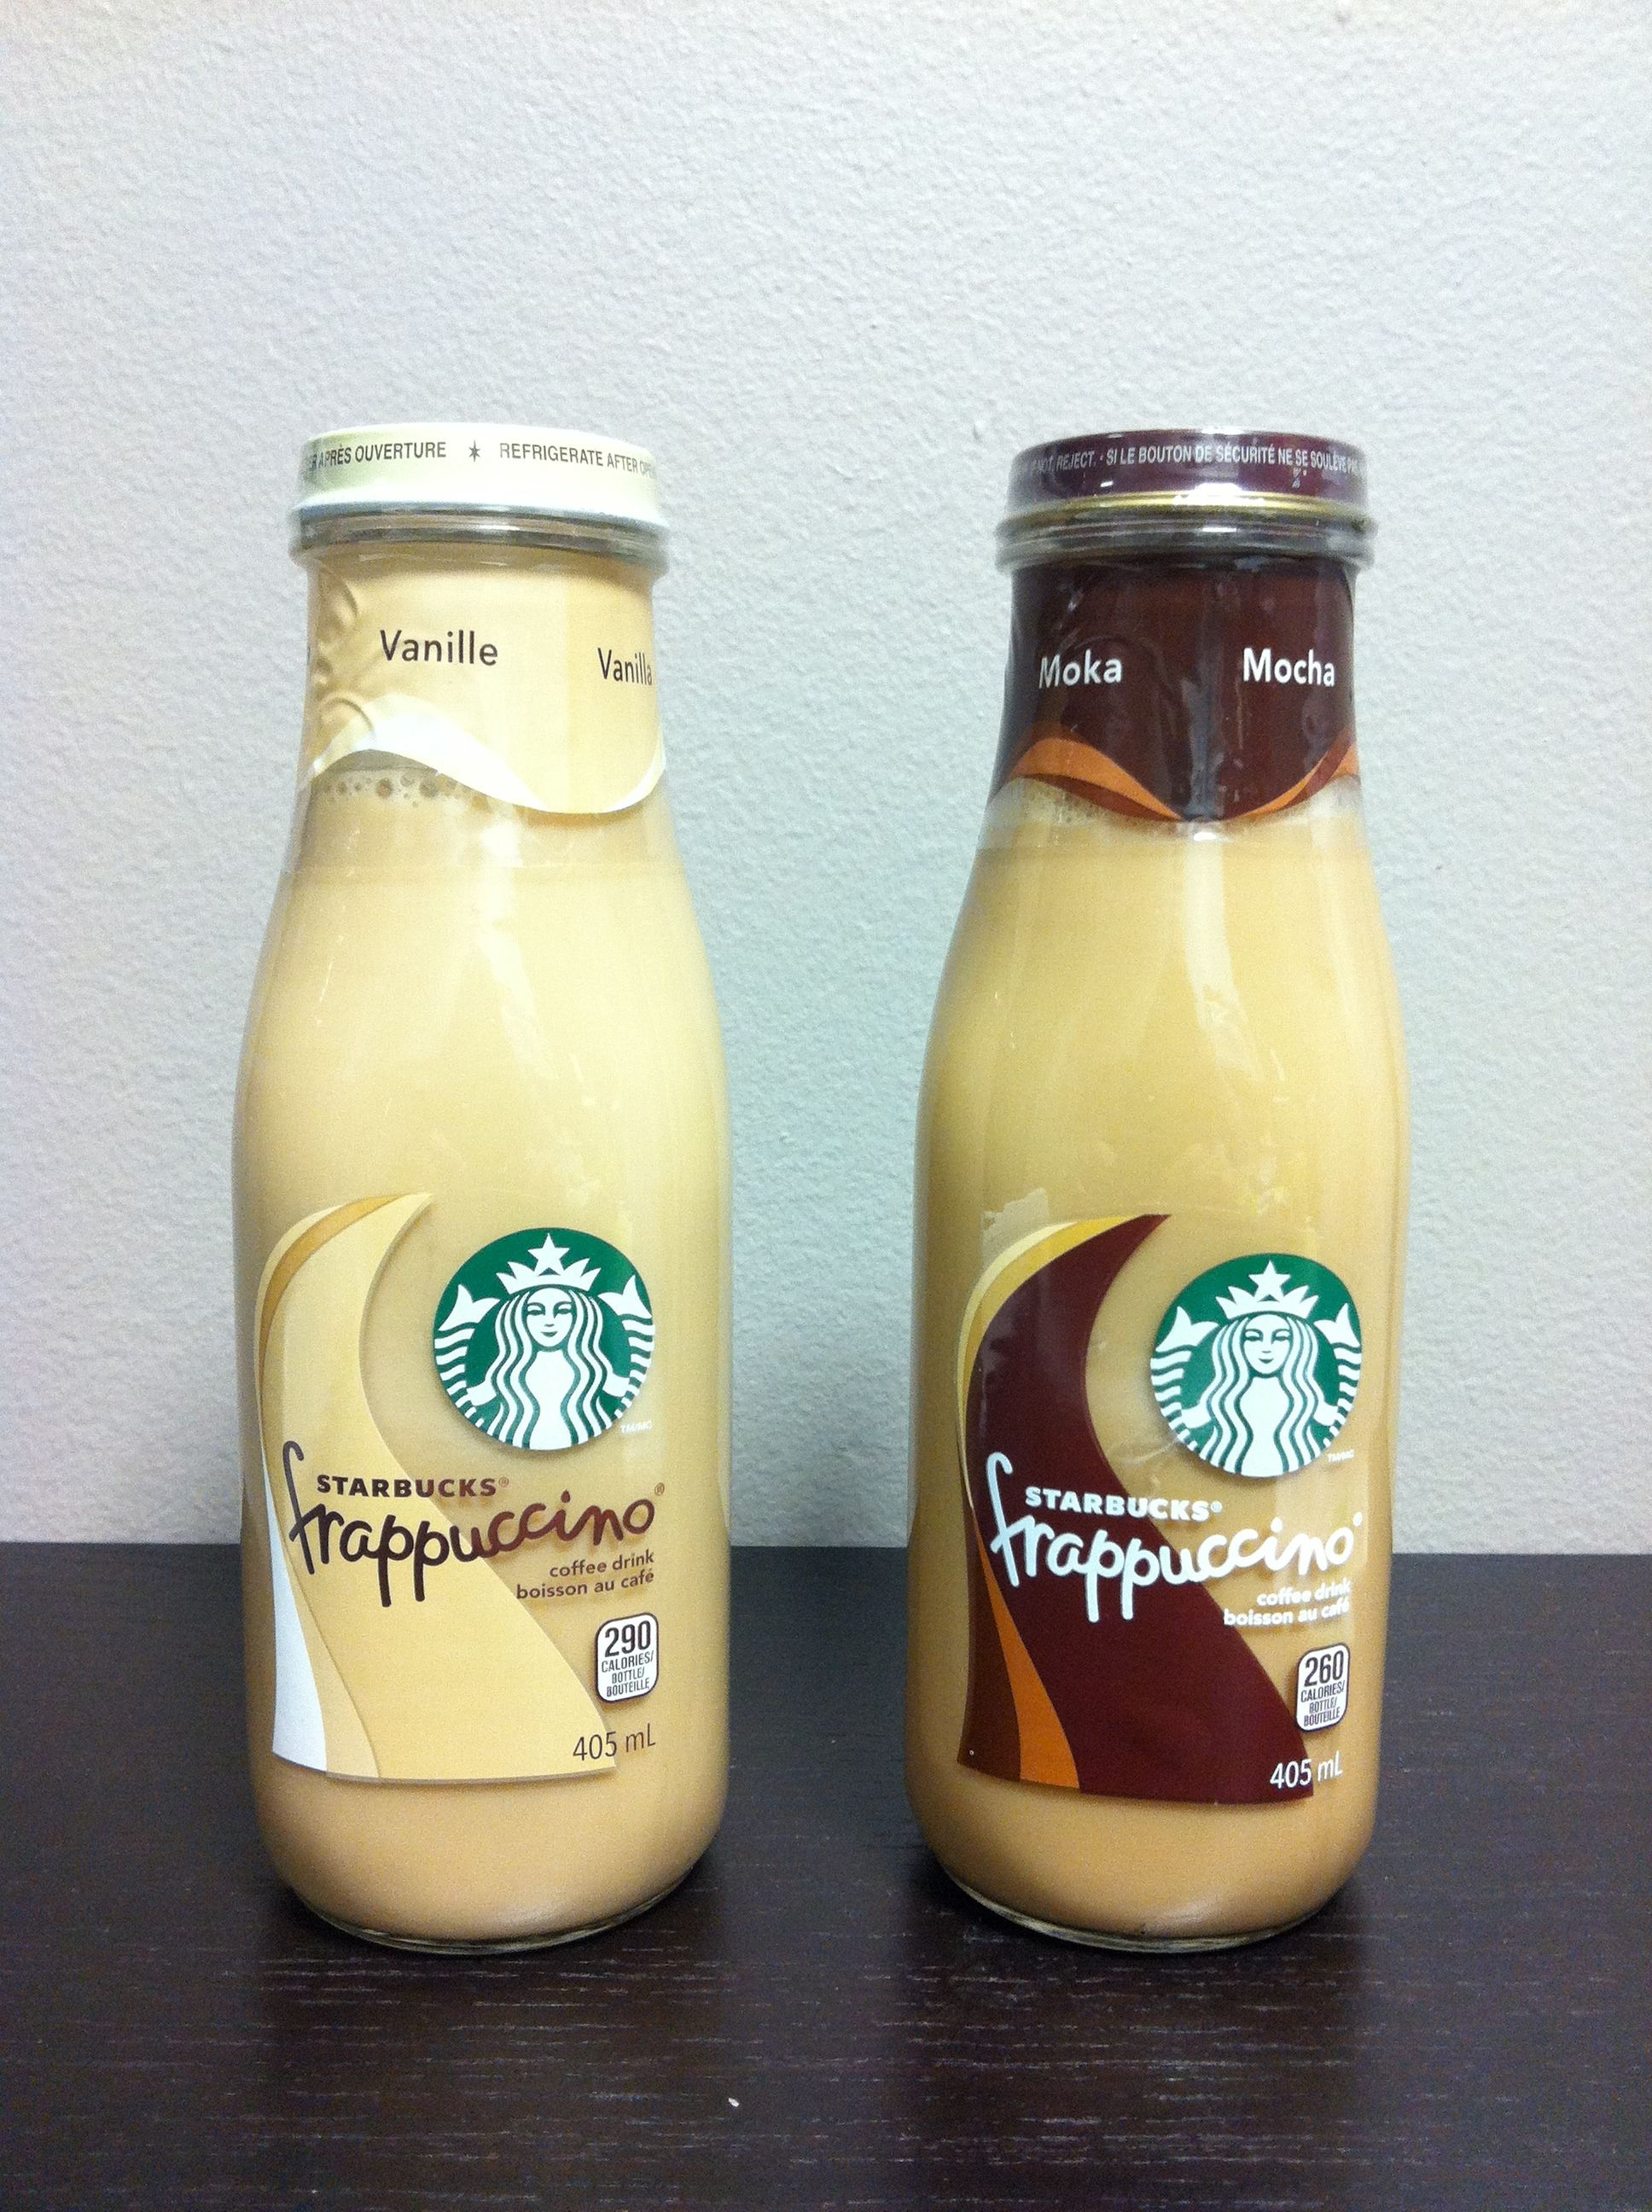 The Starbucks bottled frappuccino had a stronger coffee